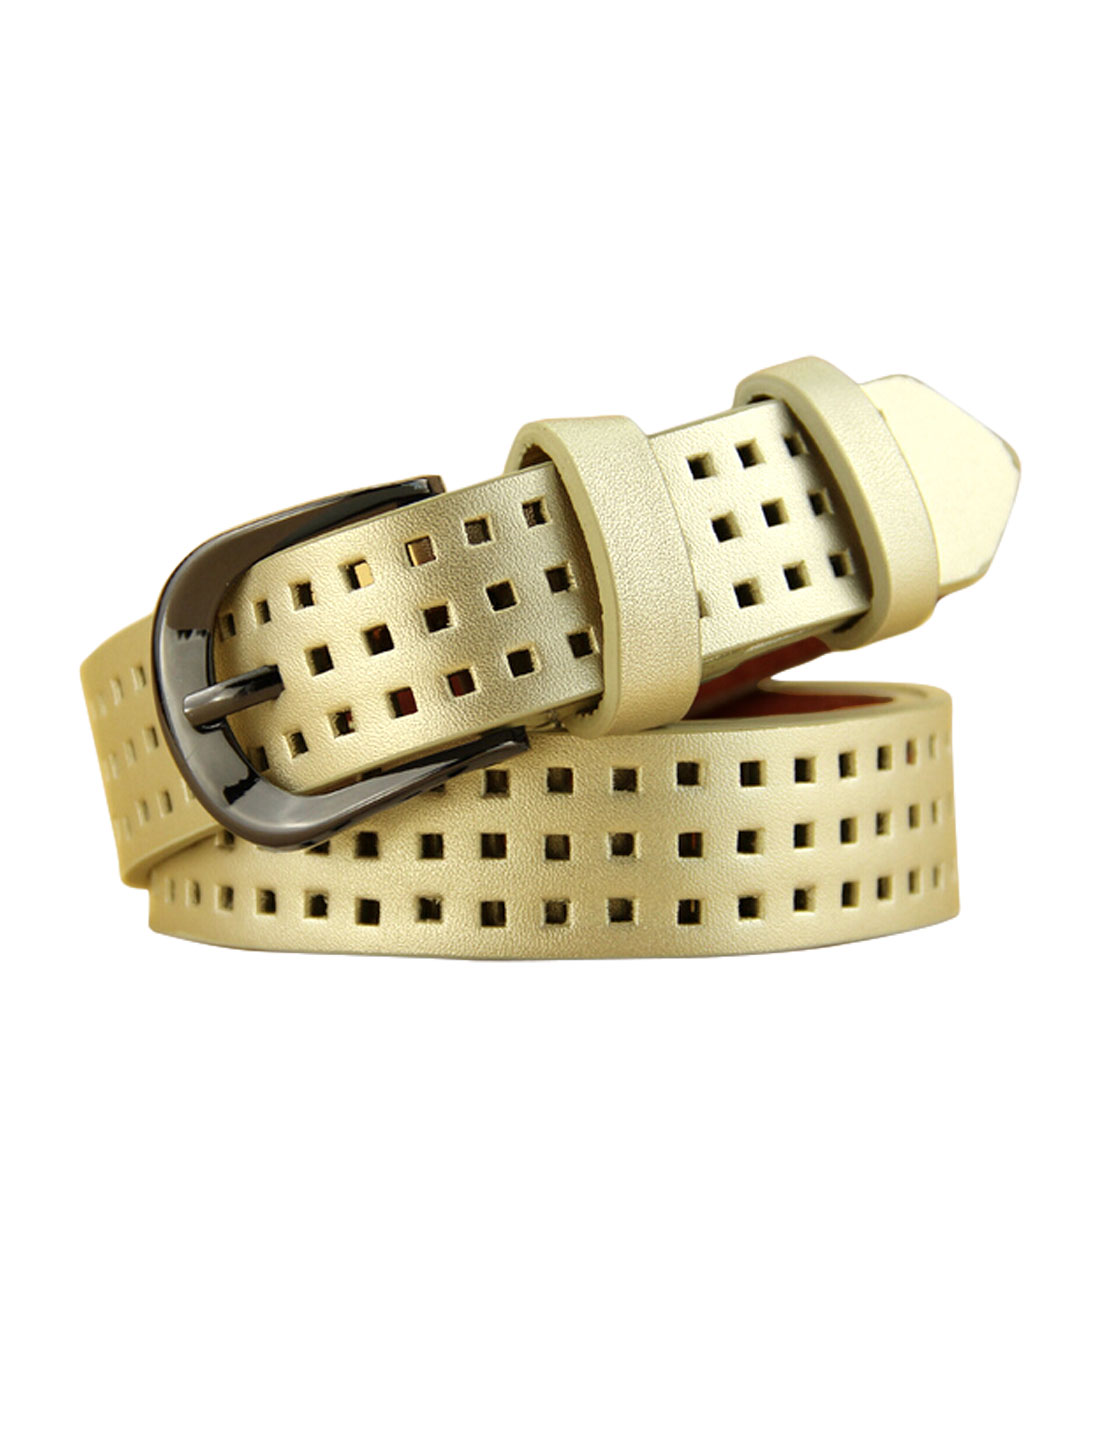 Women Single Pin Buckle Adjustable Hollow Out PU Belt Gold